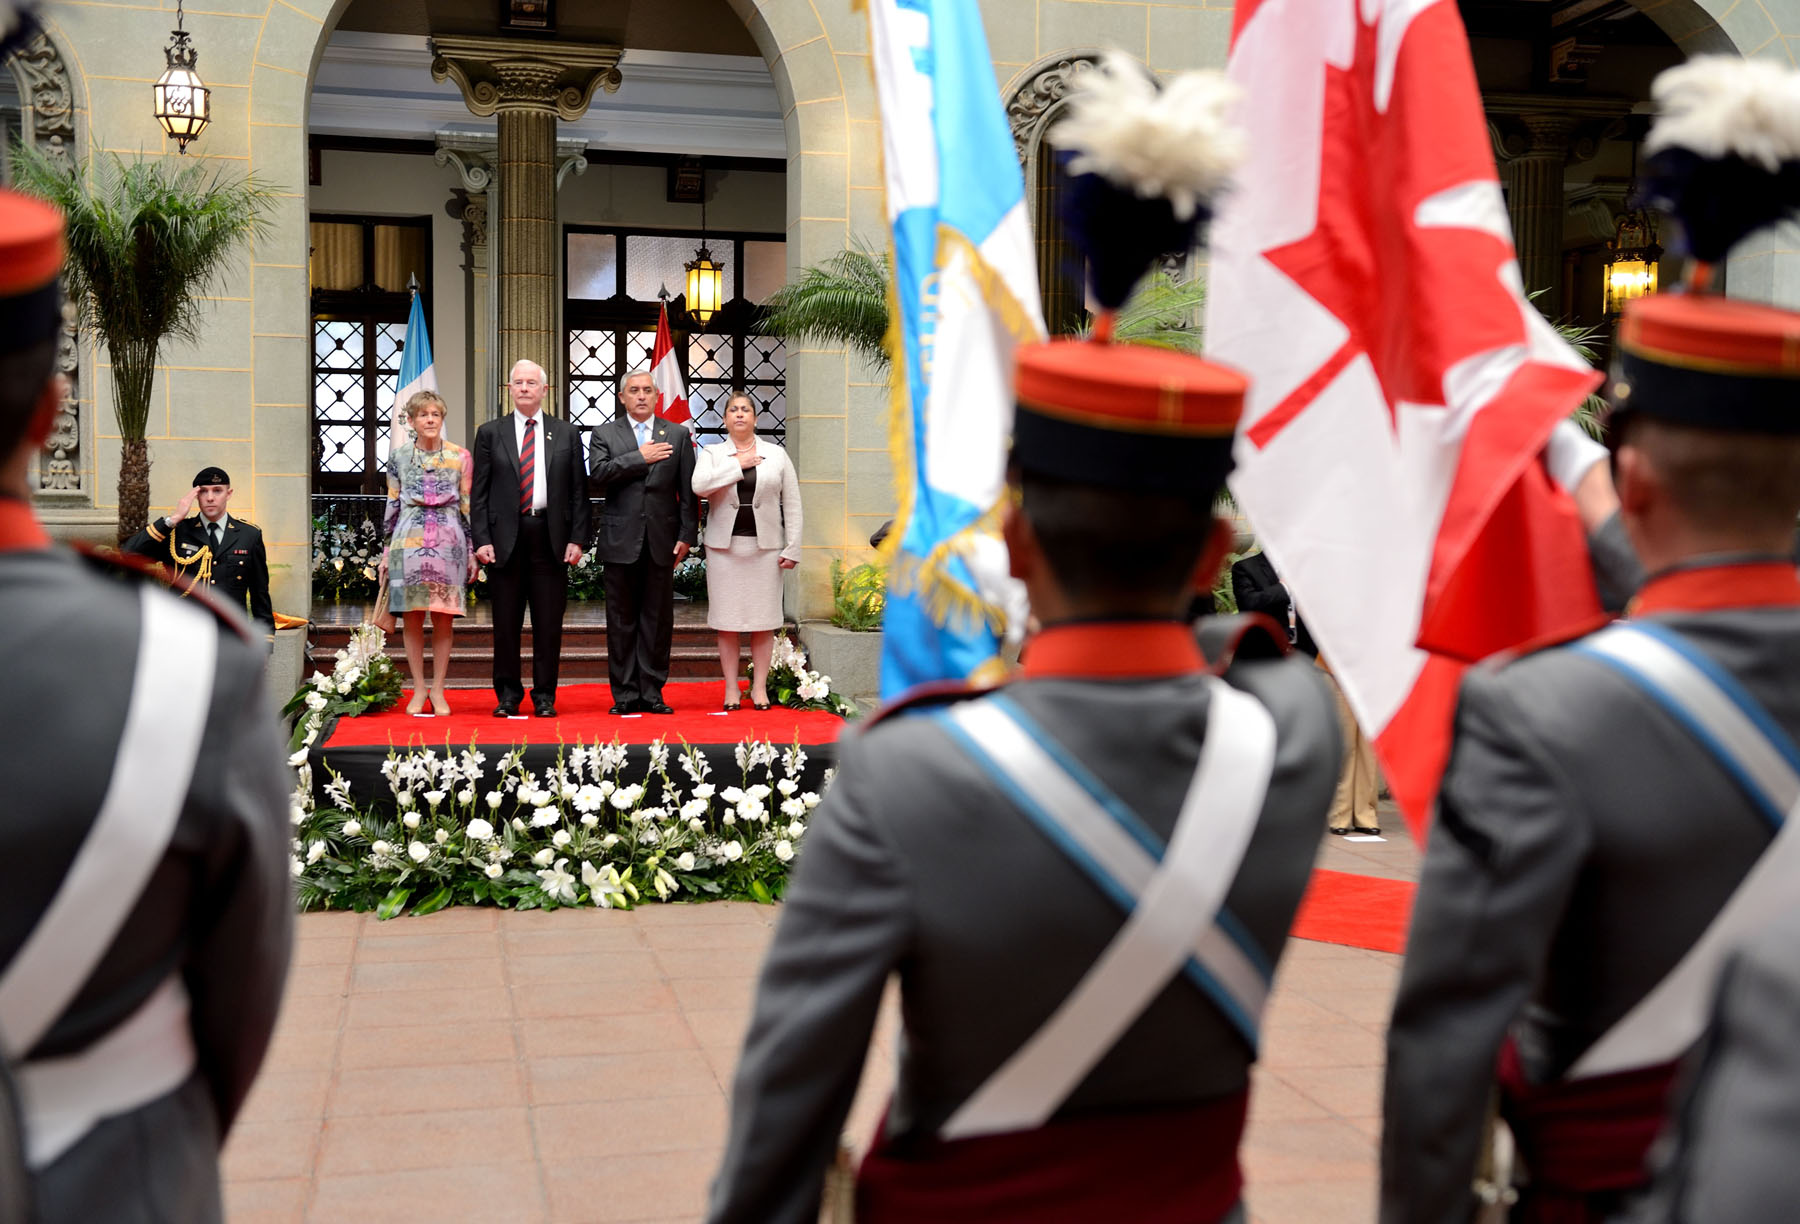 During the ceremony, the Governor General received military honours.